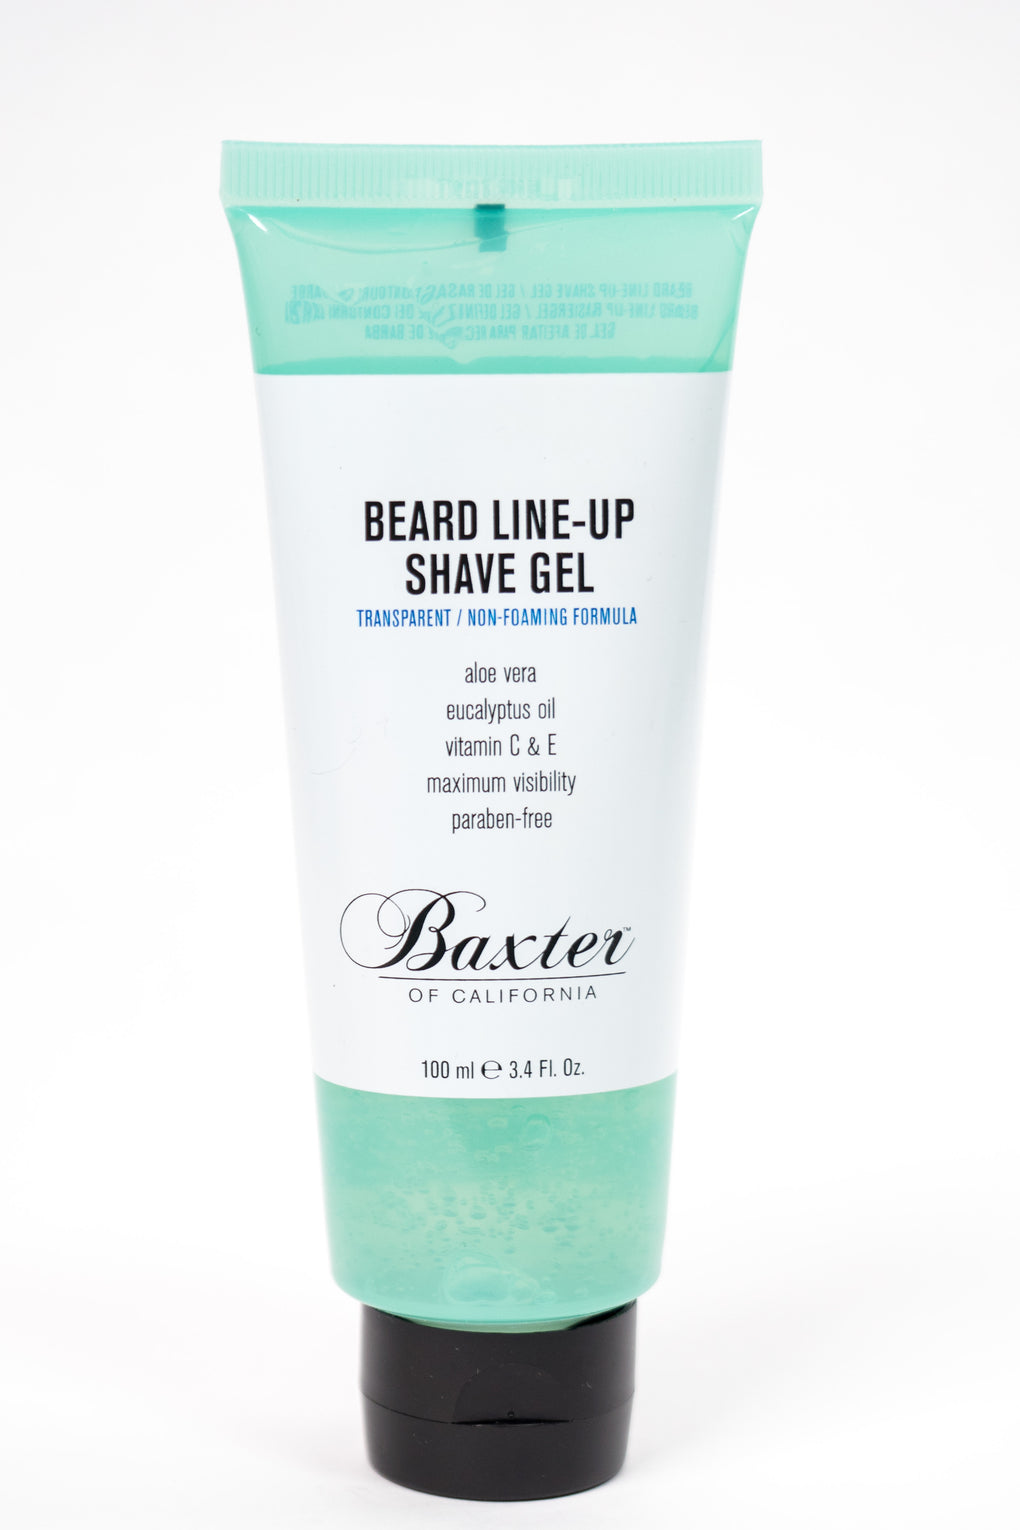 Baxter Beard Line-Up Shave Gel at Consigliere